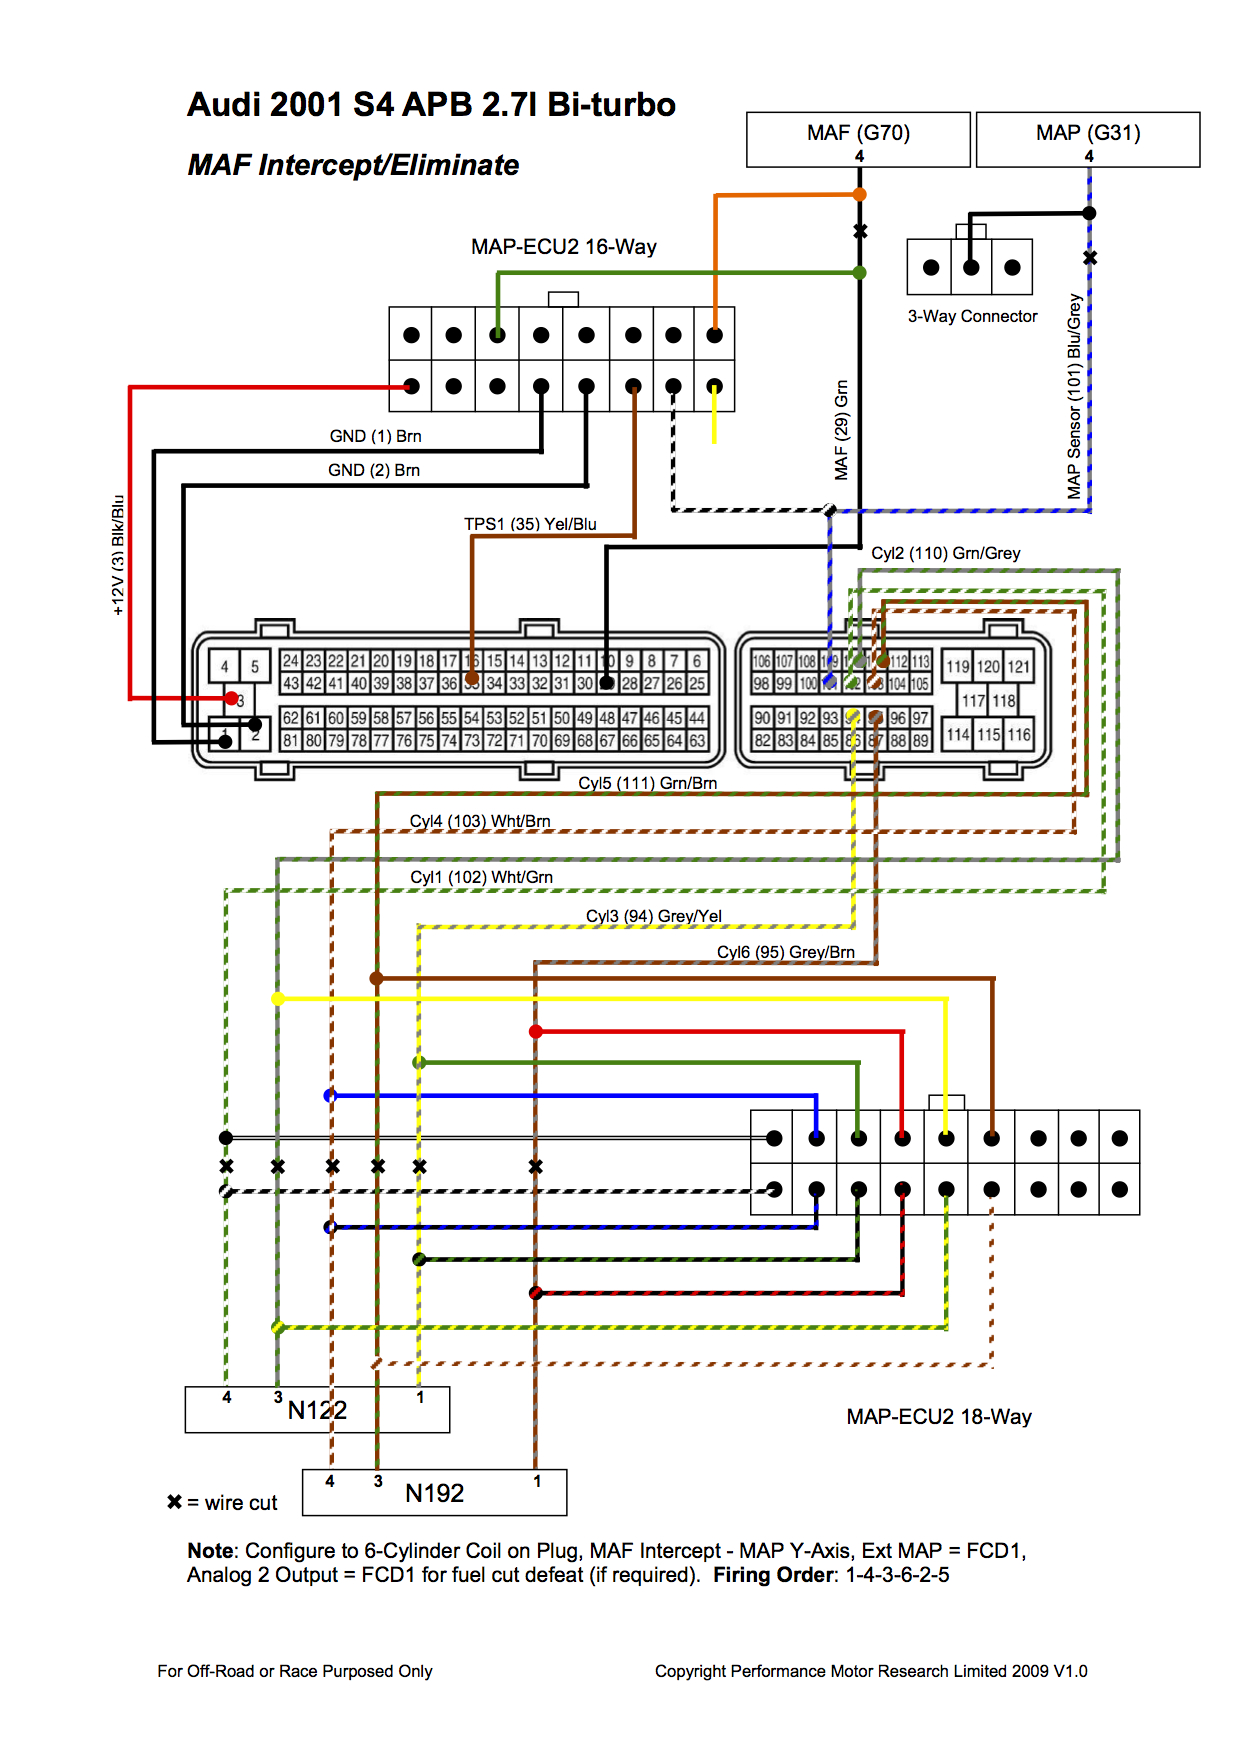 Audi S4 20011 1996 toyota starlet stereo wiring diagram wiring diagram and  at soozxer.org